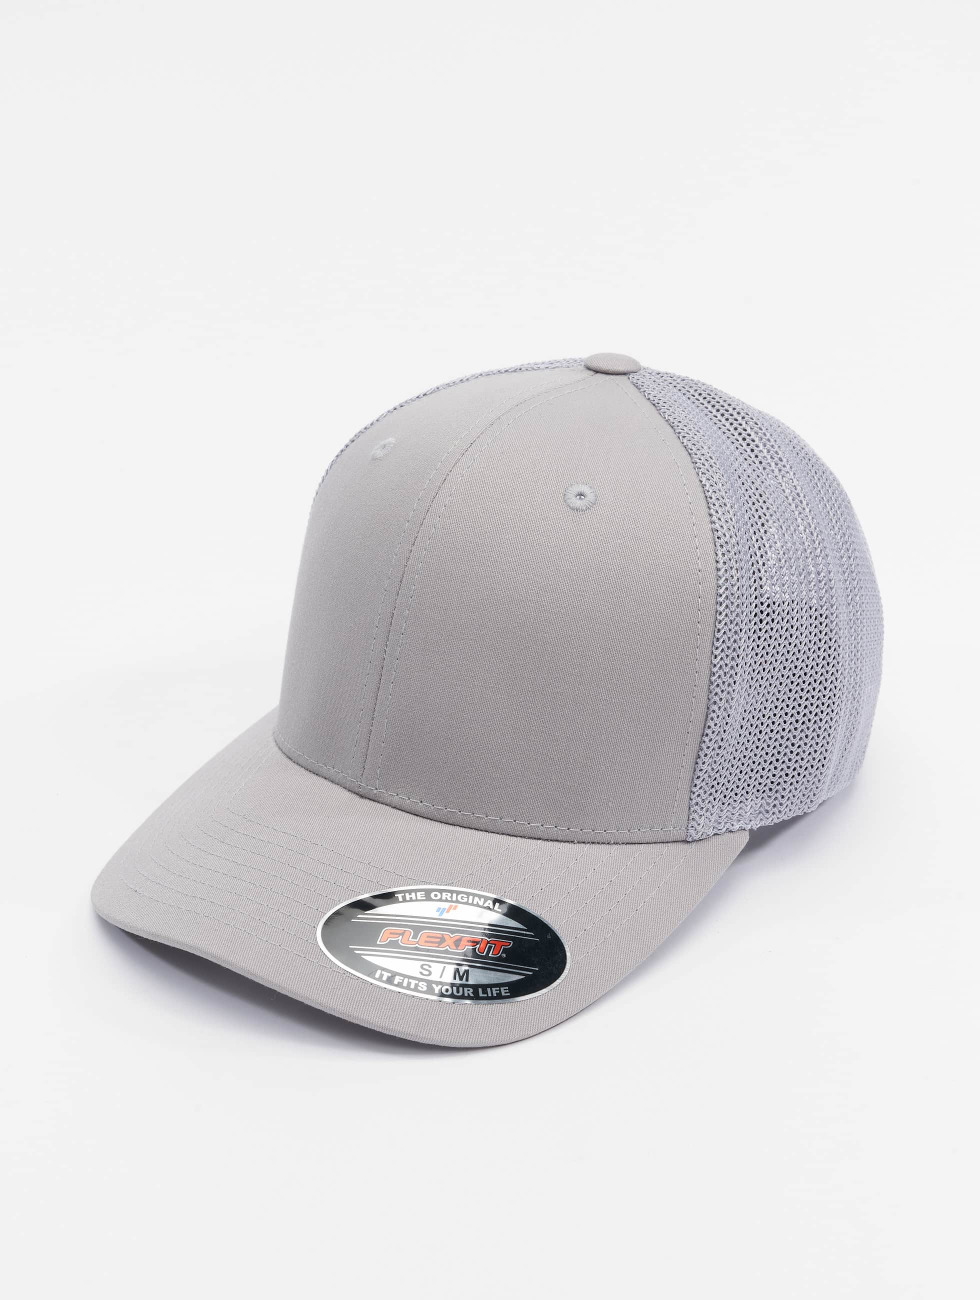 Flexfit Lastebilsjåfør- / flexfitted caps Mesh Cotton Twill sølv